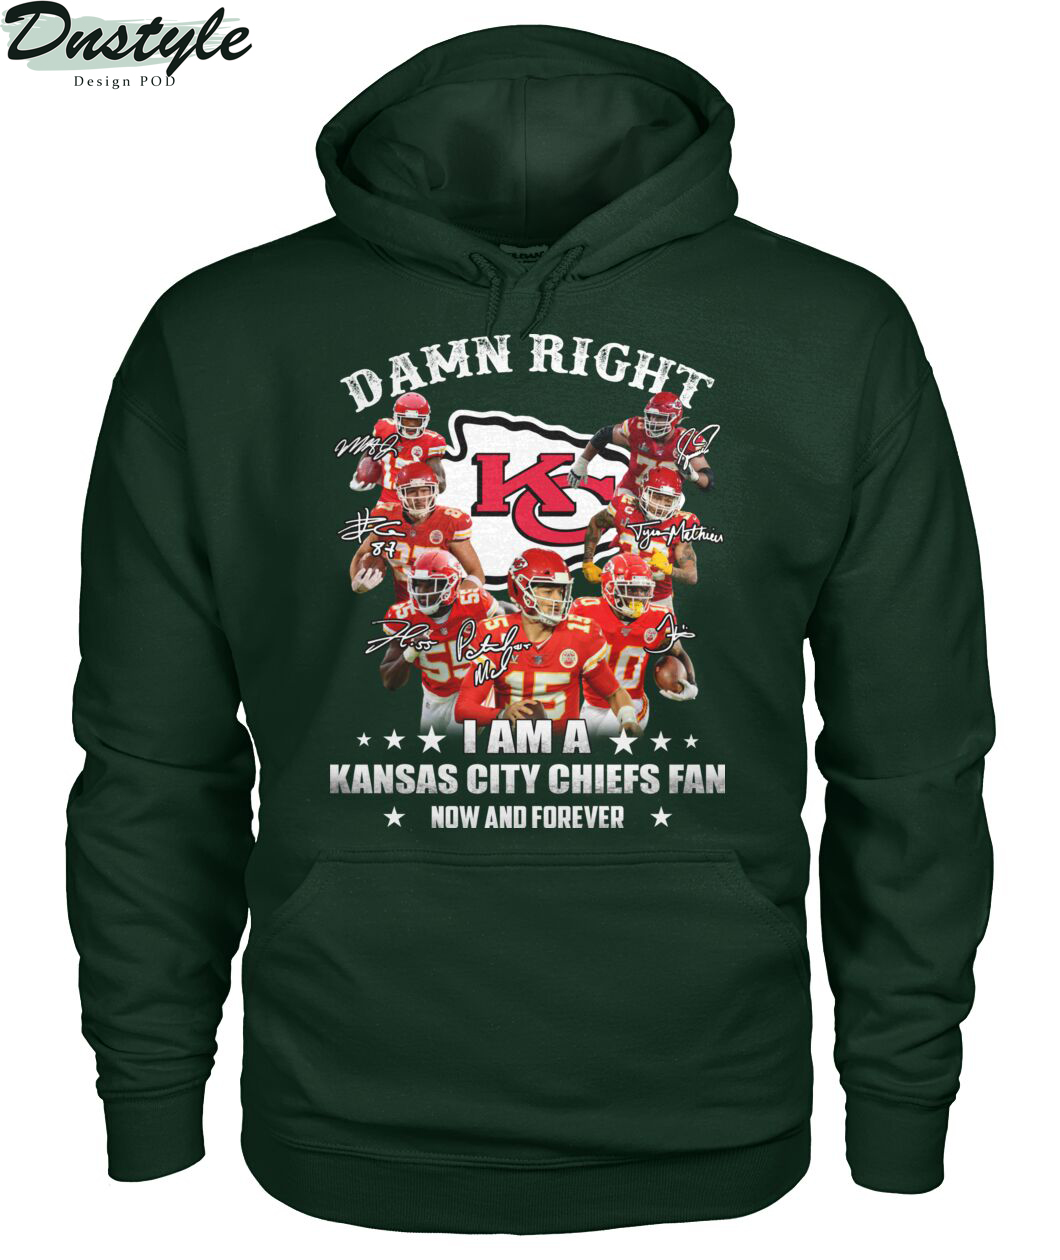 Damn right I am a Kansas city chiefs fan now and forever hoodie